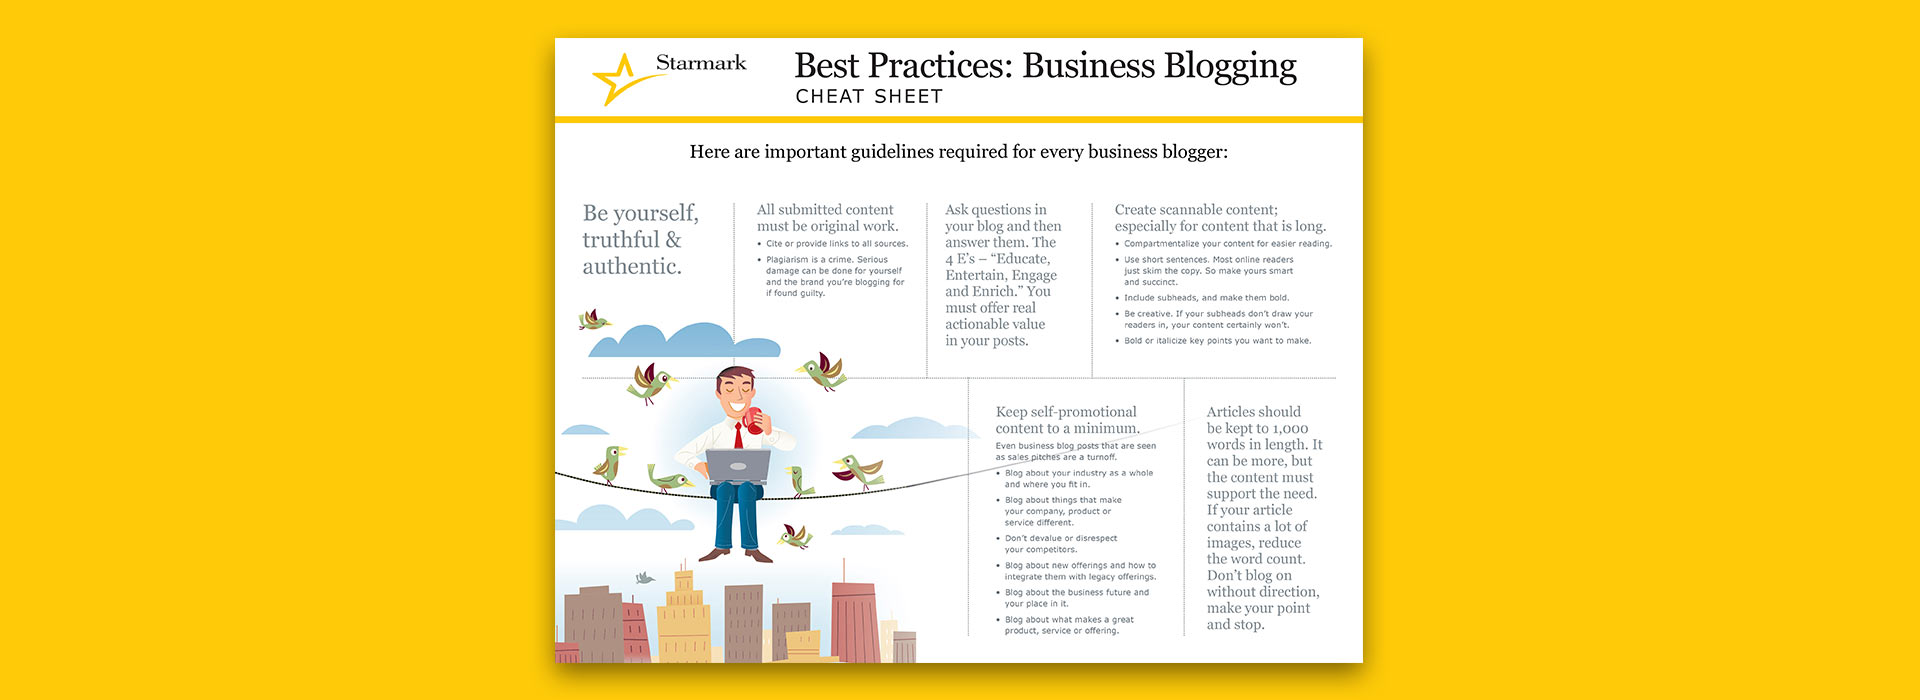 Best Practices in Business Blogging Cheat Sheet | Starmark